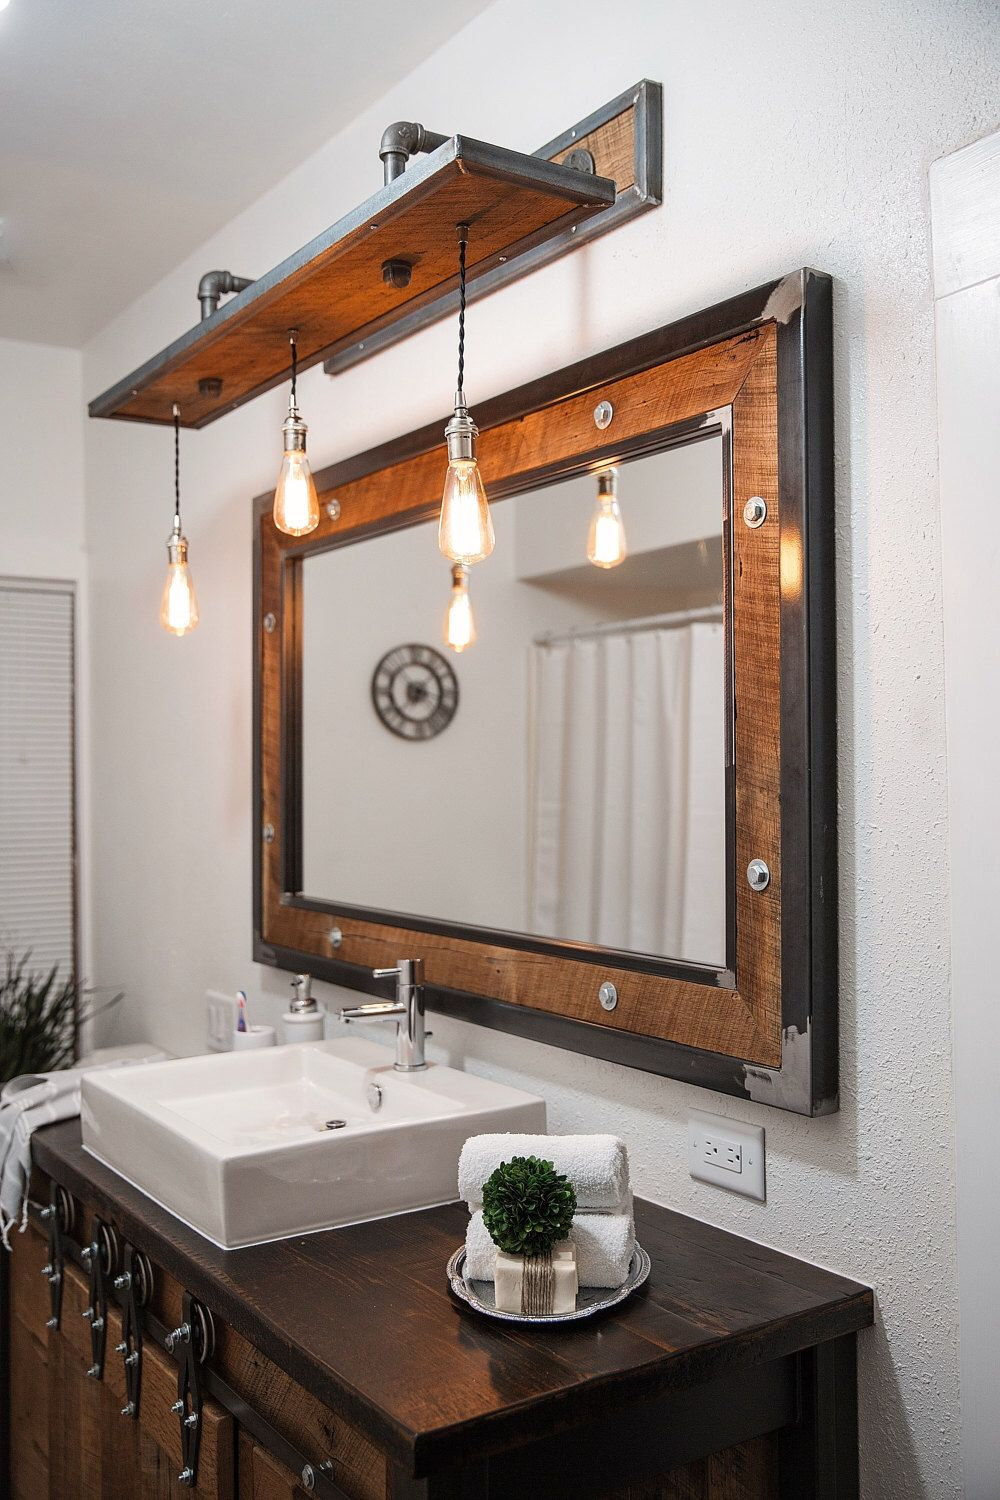 25 Rustic Style Ideas With Rustic Bathroom Vanities ...